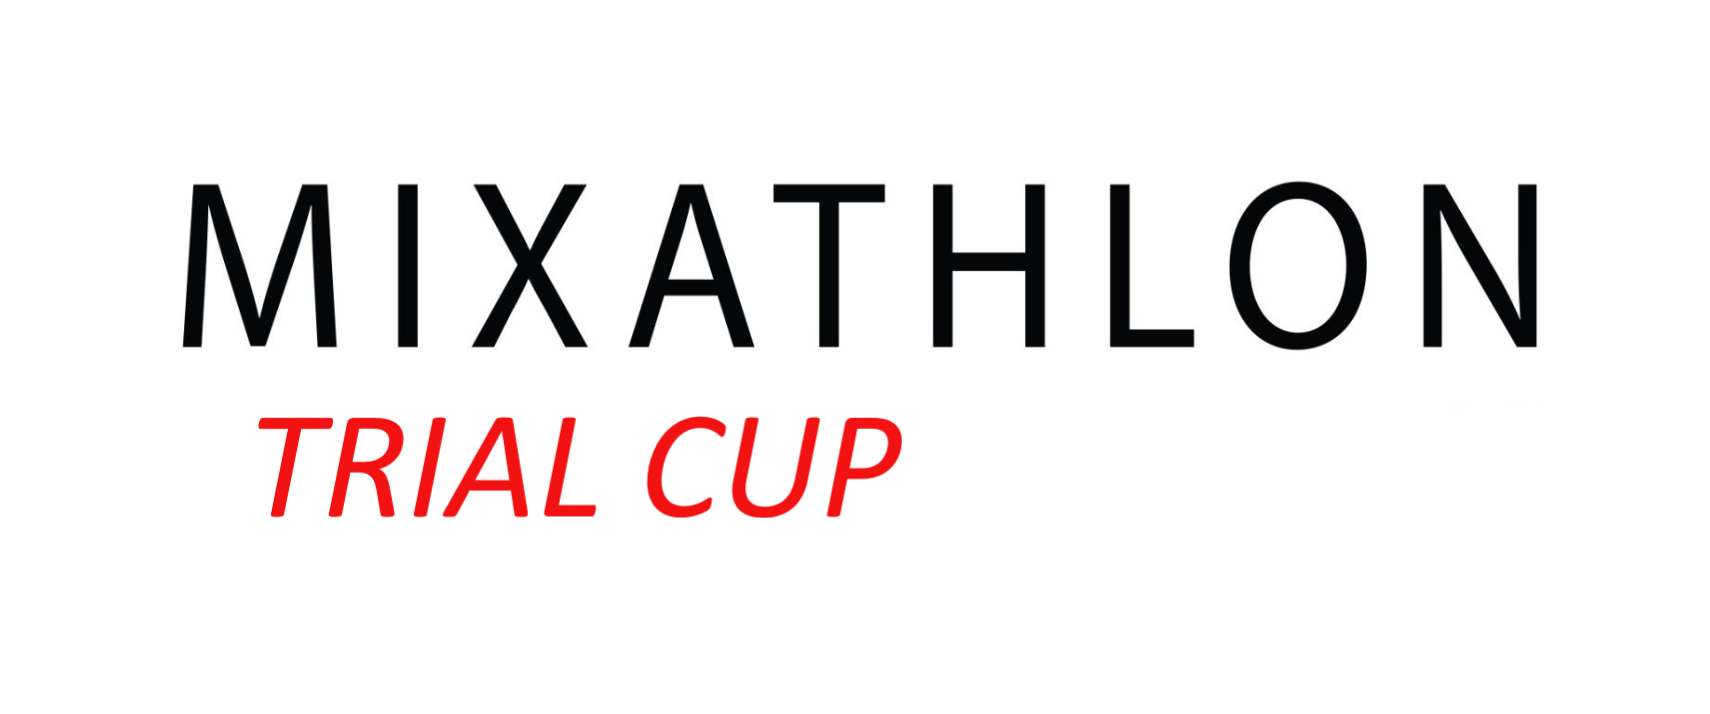 Mixathlon trial cup